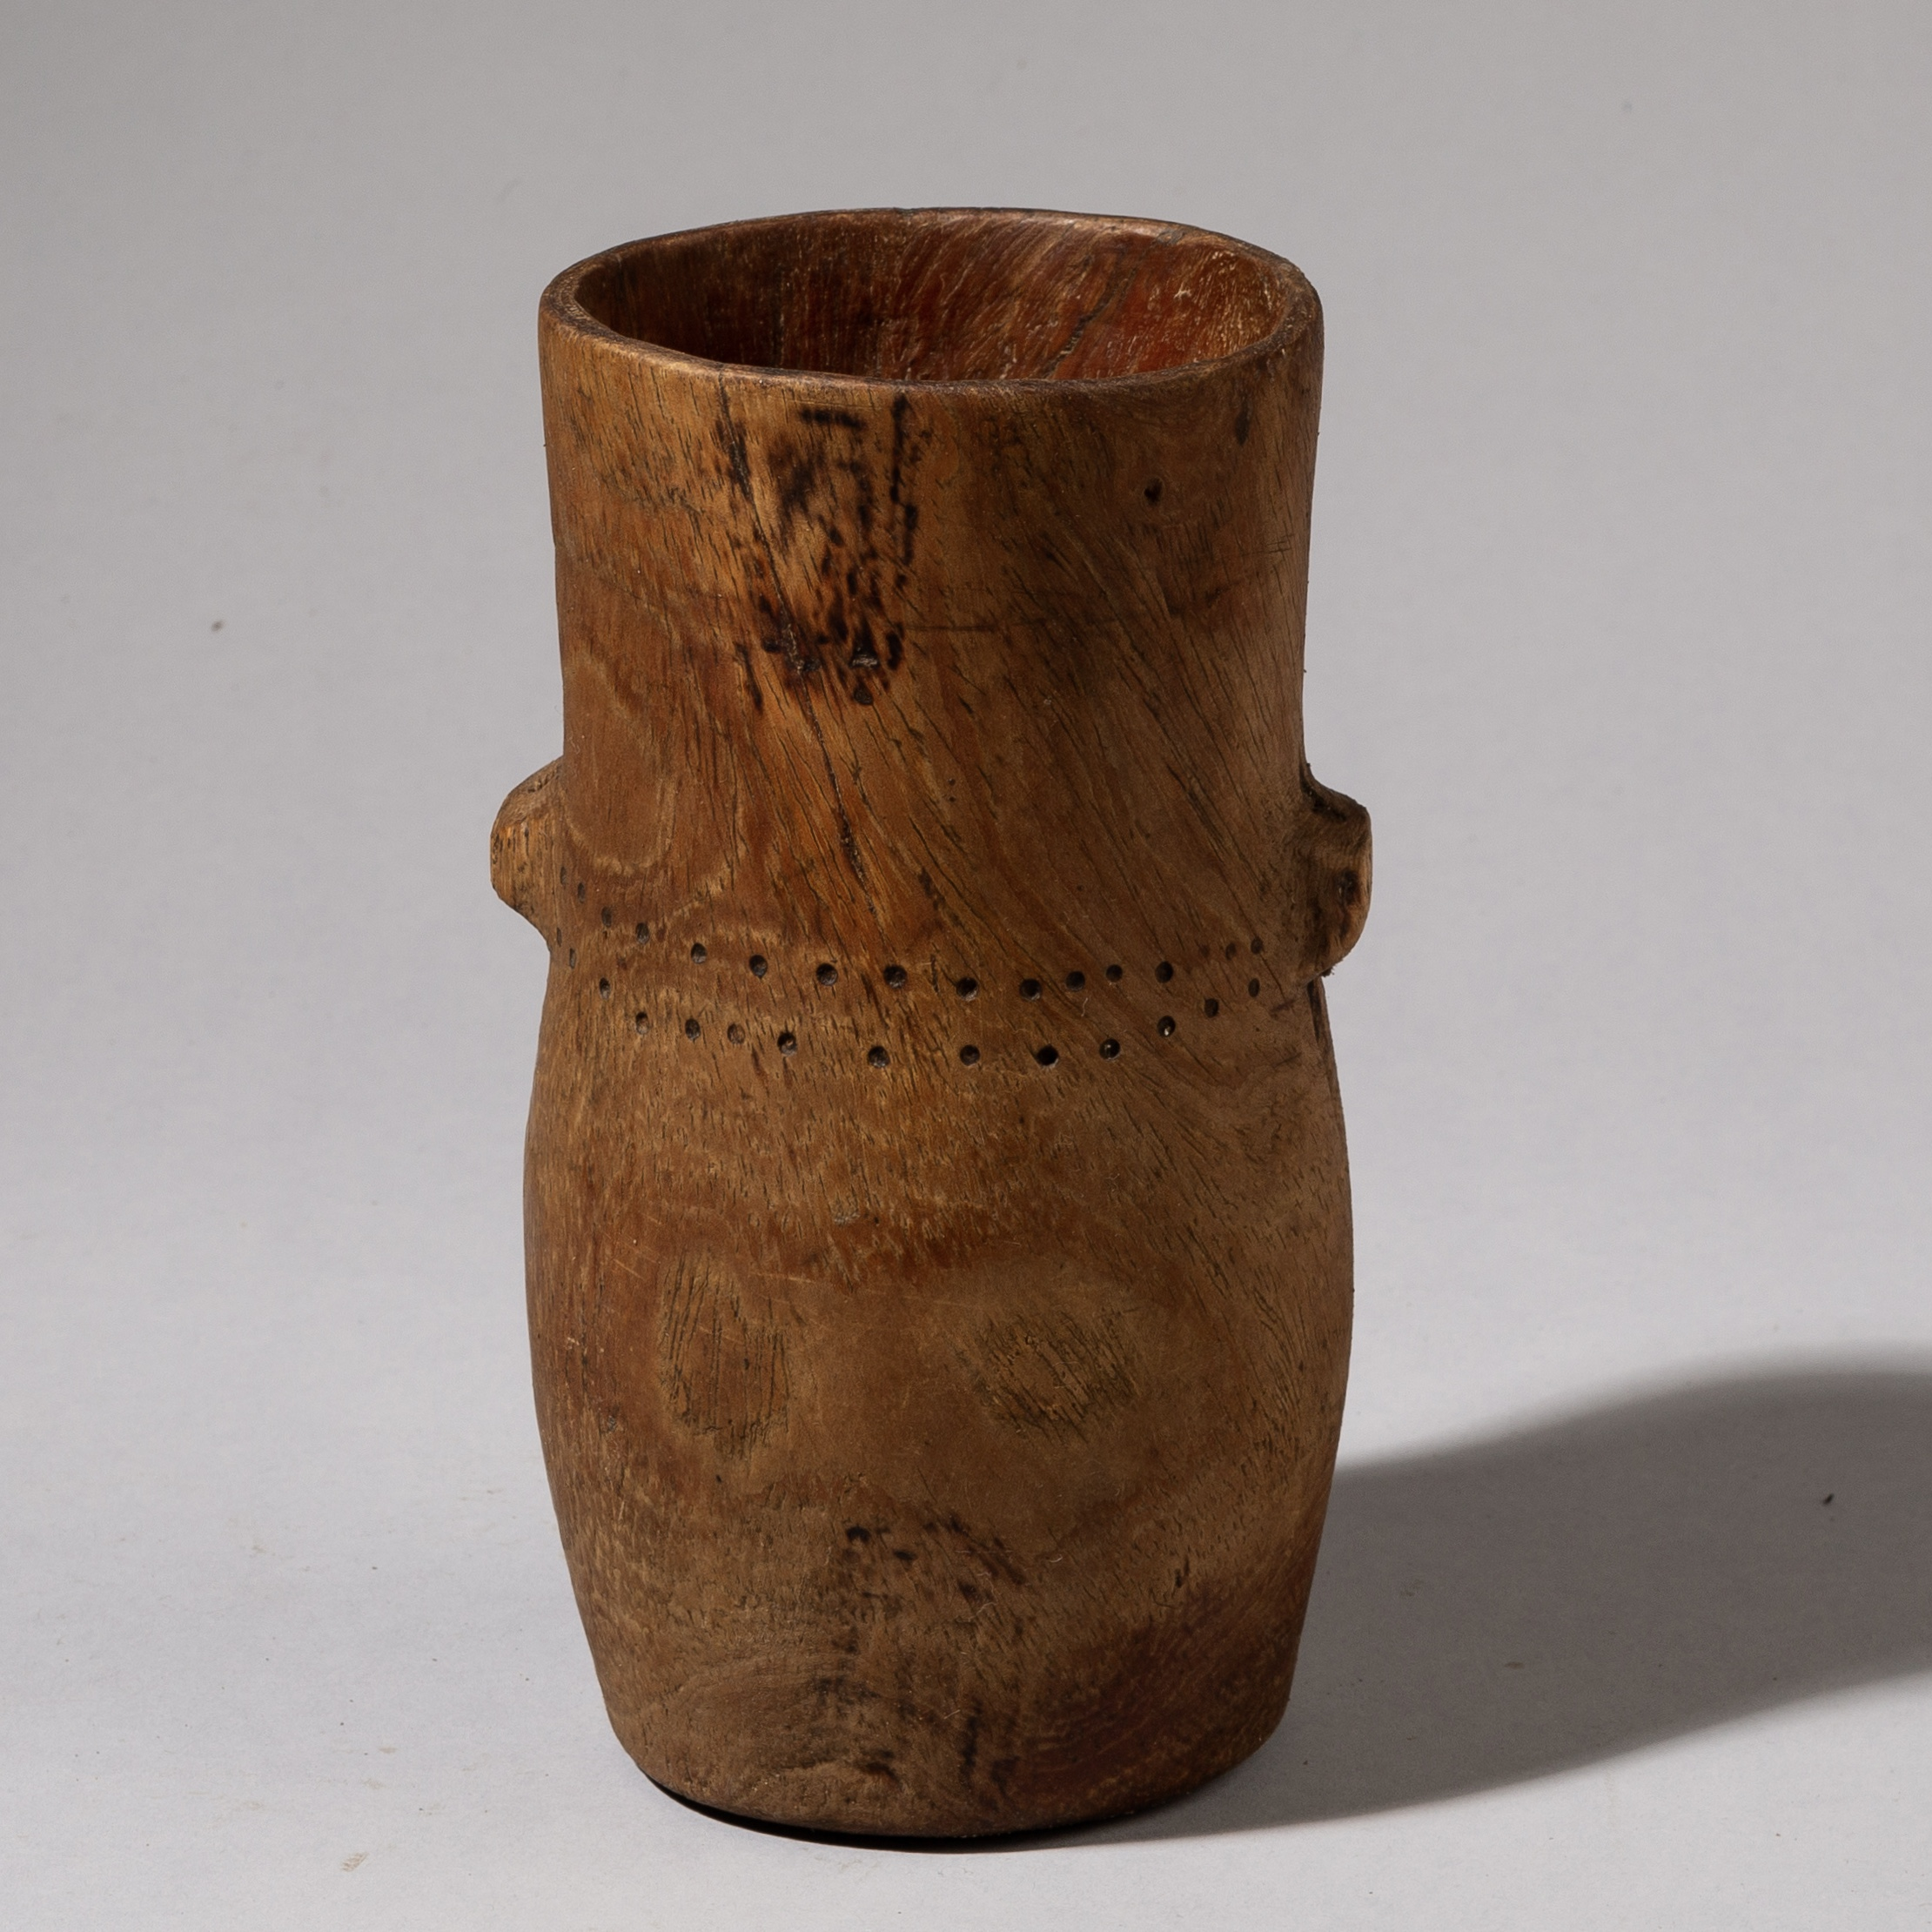 A SMART TURKANA WOOD CONTAINER FROM KENYA ( No 3525 )